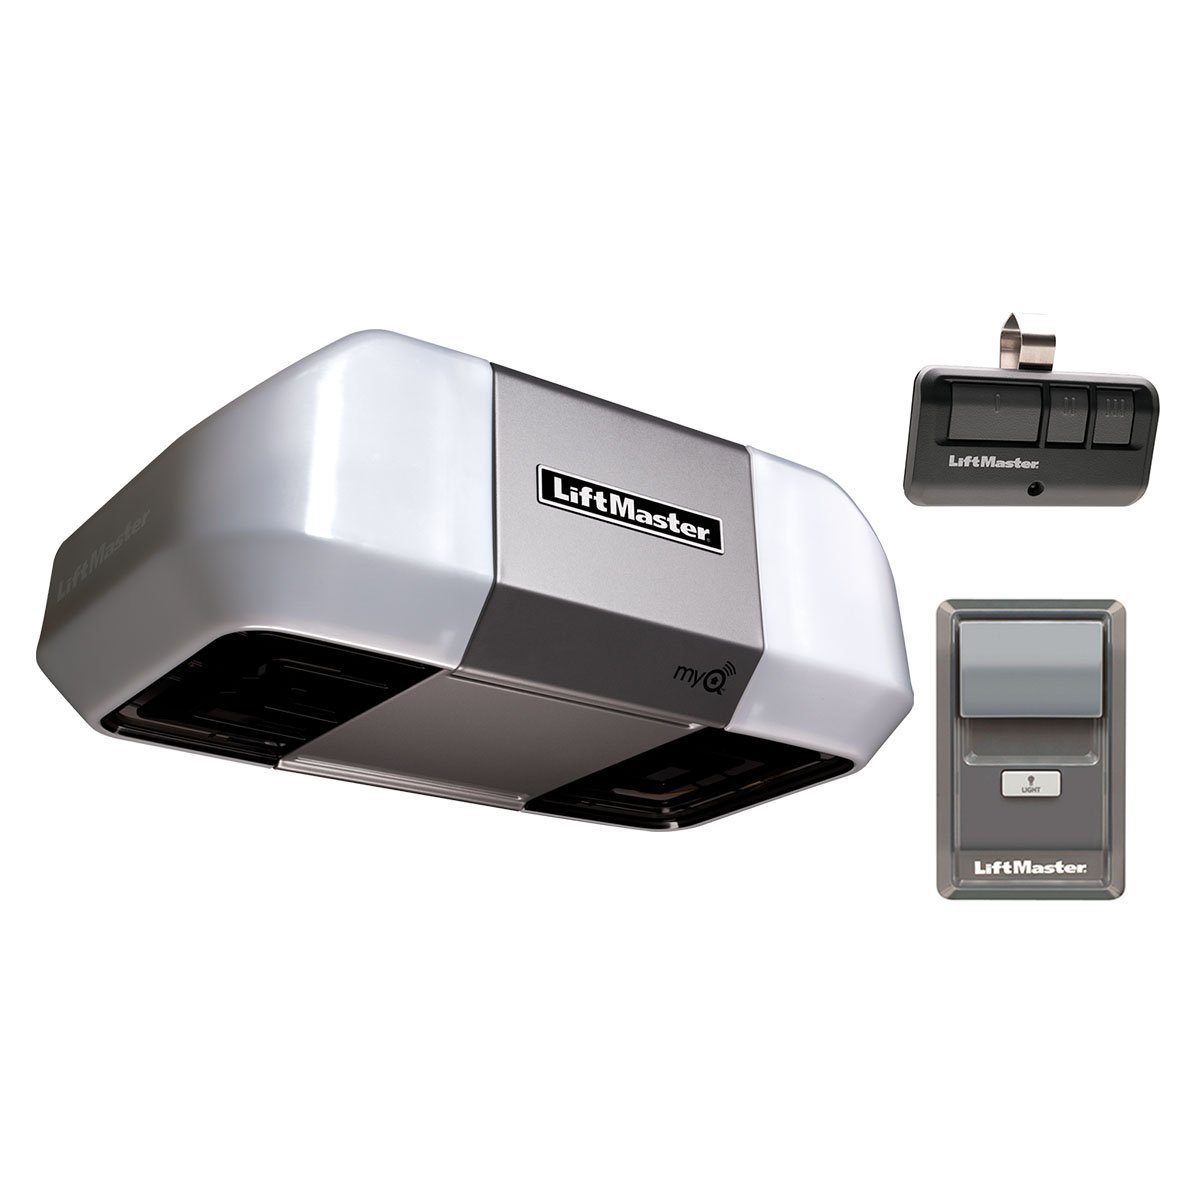 Liftmaster 8355 Review: A Garage Door Opener Buyer's Guide